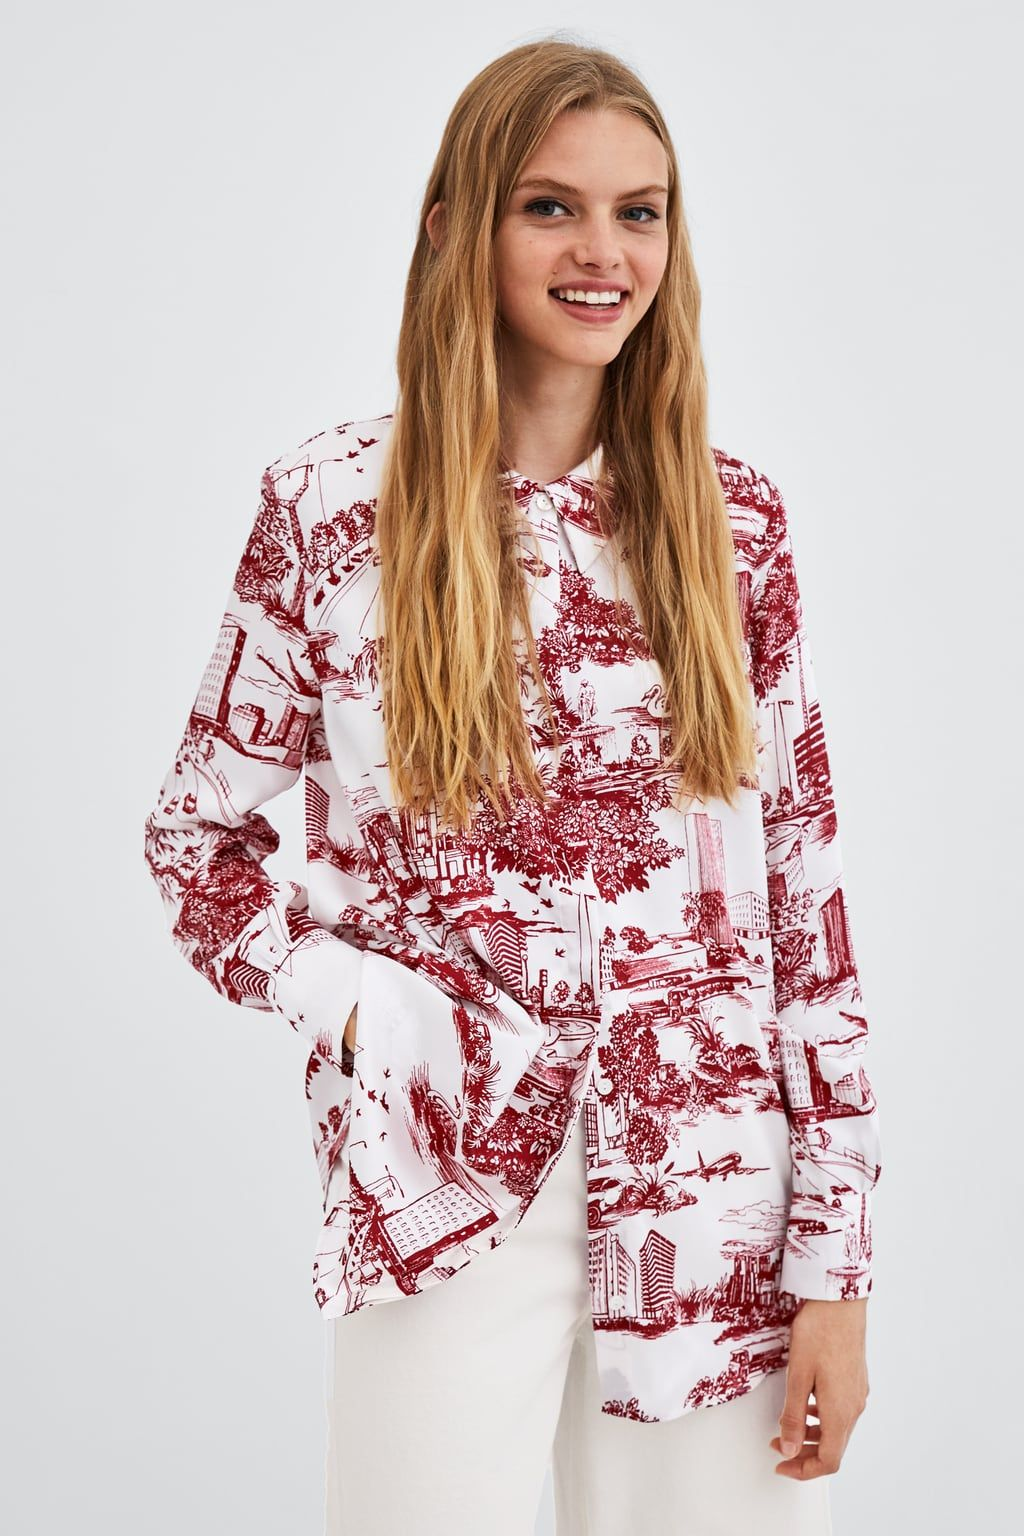 dd902a57 Image 2 of CITY PRINT SHIRT from Zara | PRINT INSPIRATION in 2019 ...